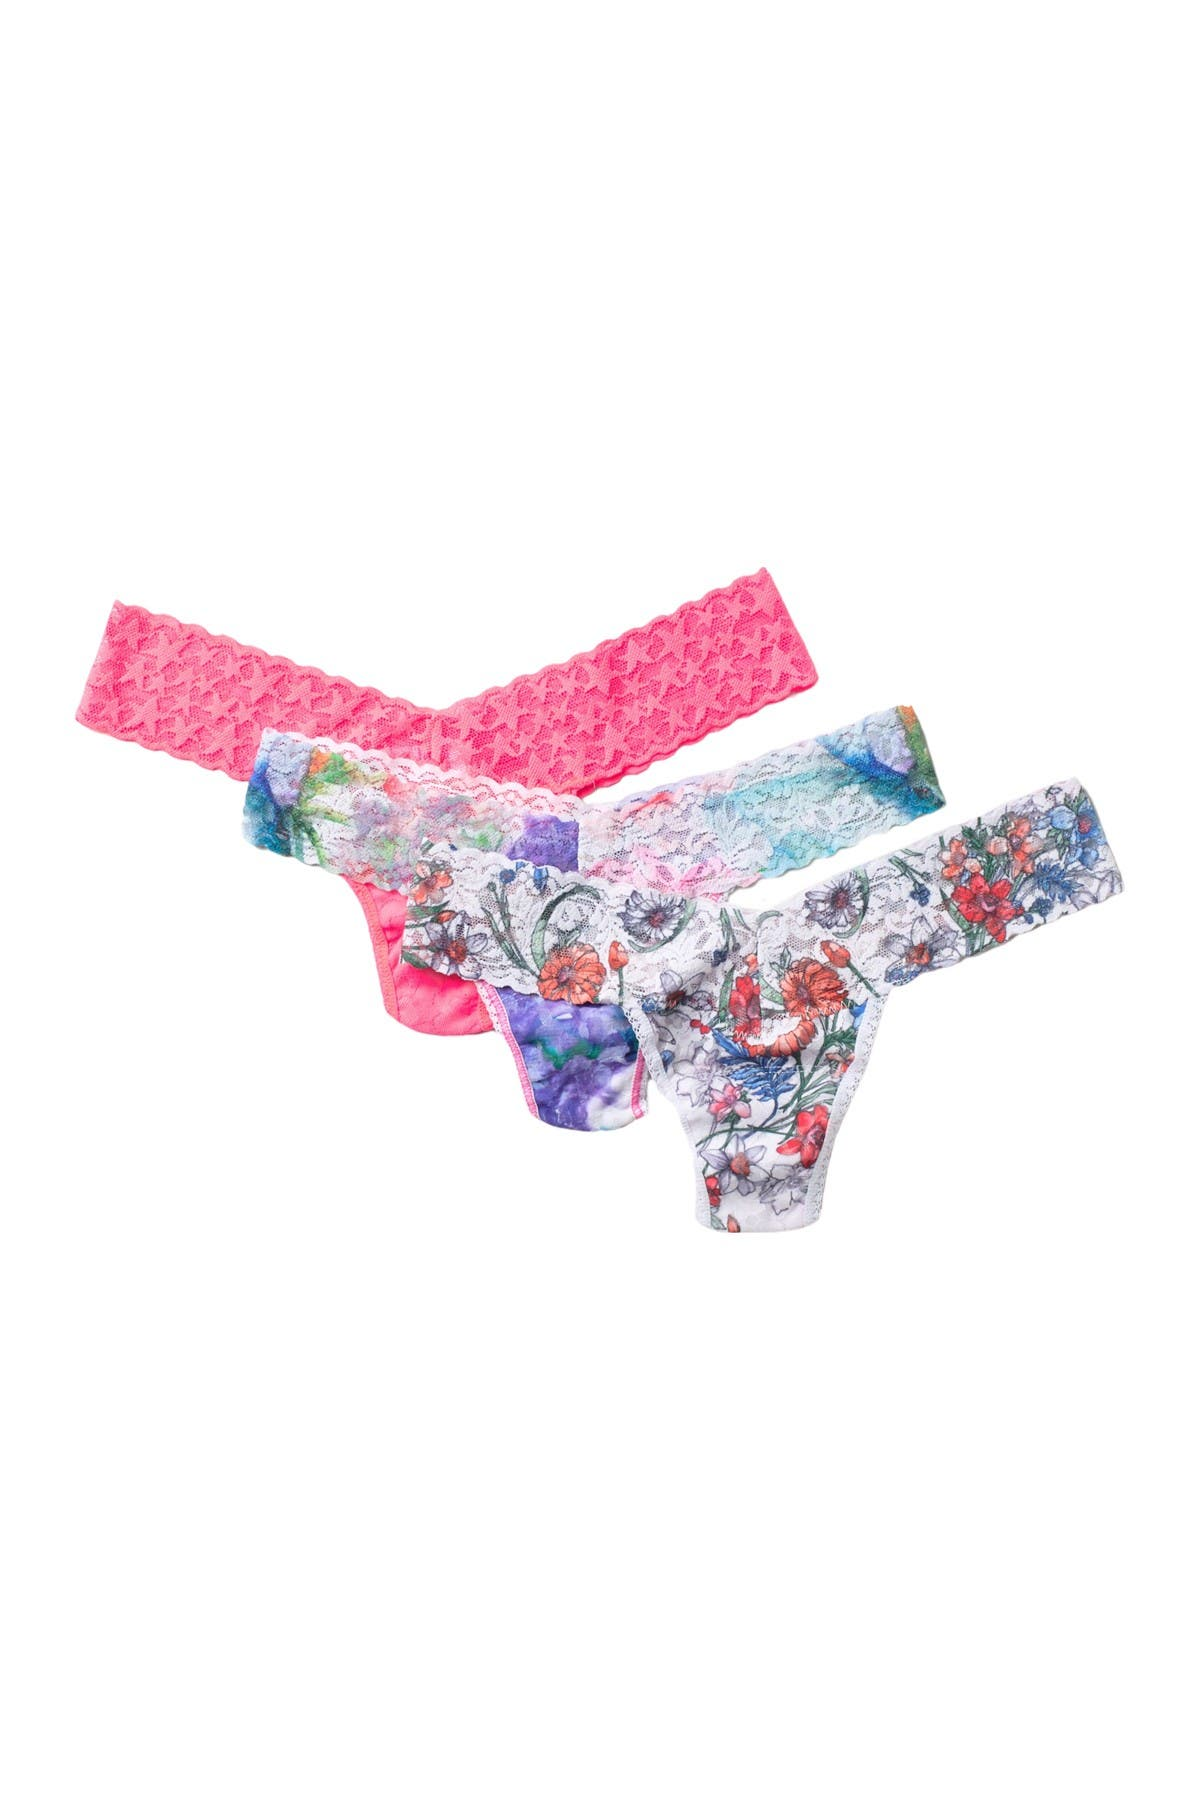 Image of Hanky Panky Low Rise Thong - Pack of 3